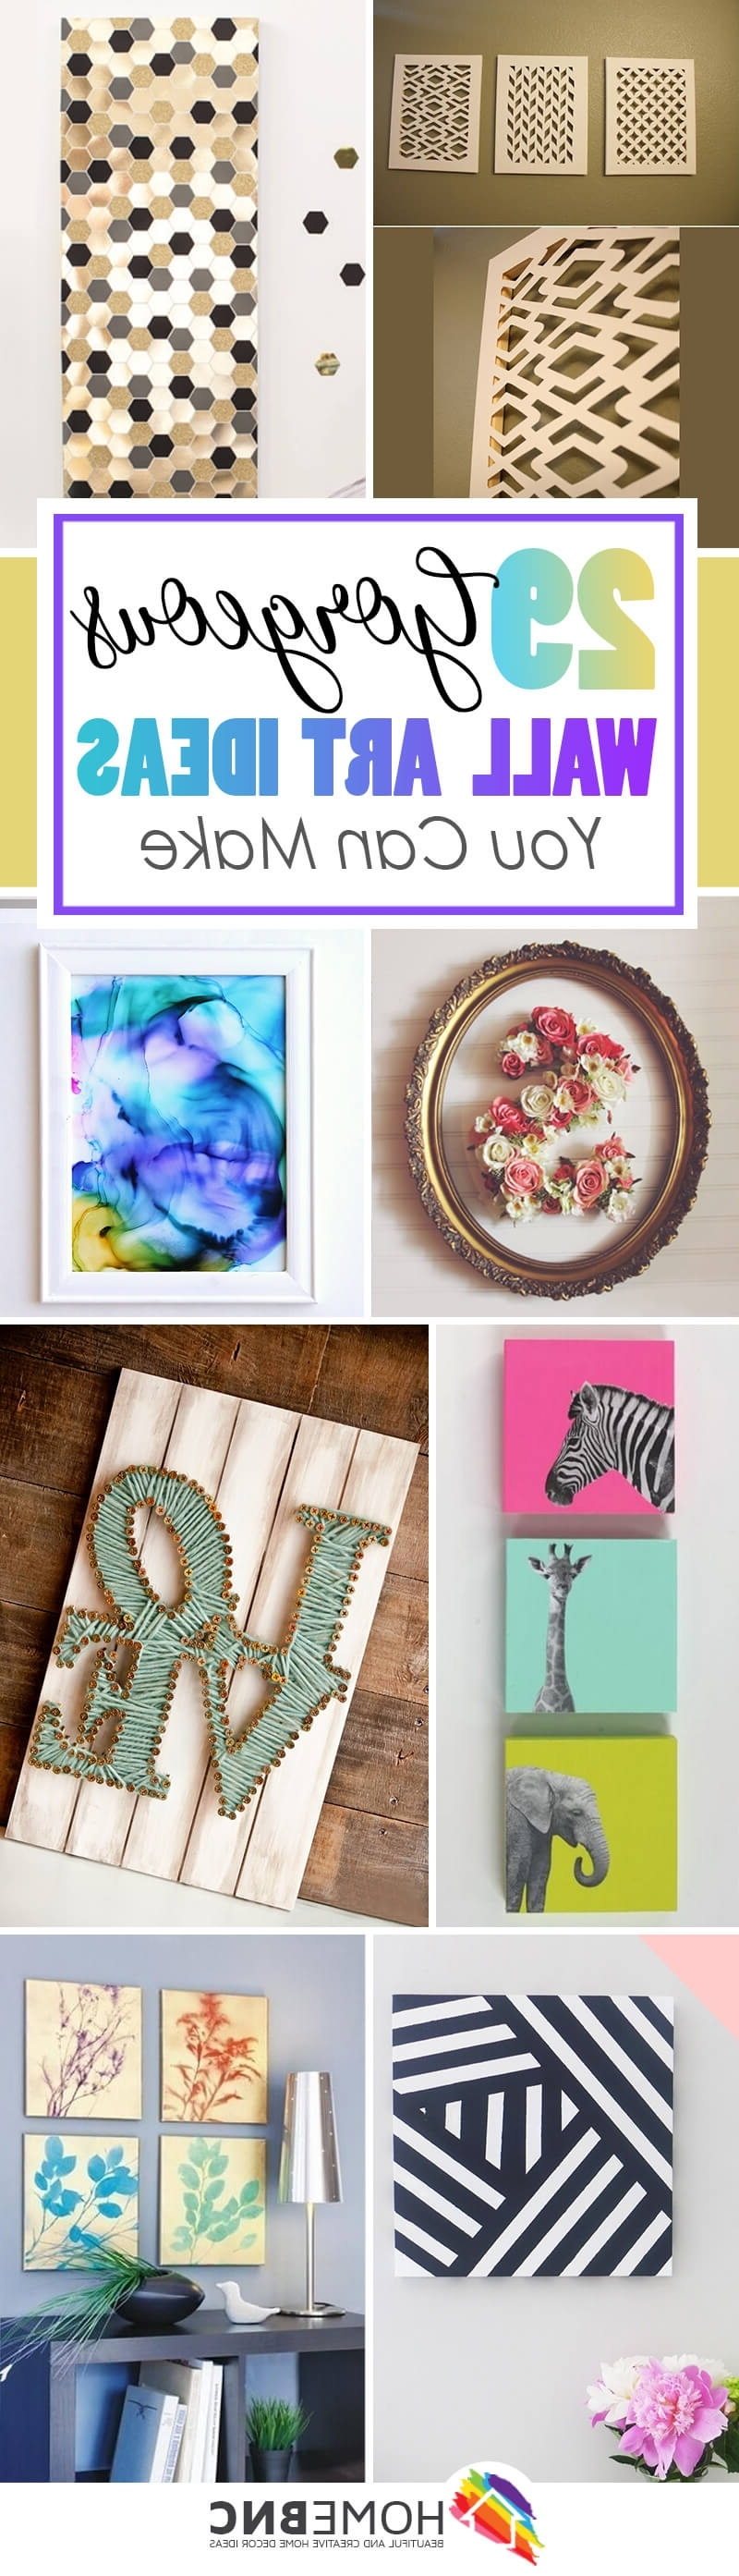 Diy Wall Art Projects Regarding Popular 36 Best Diy Wall Art Ideas (Designs And Decorations) For 2018 (Gallery 6 of 20)